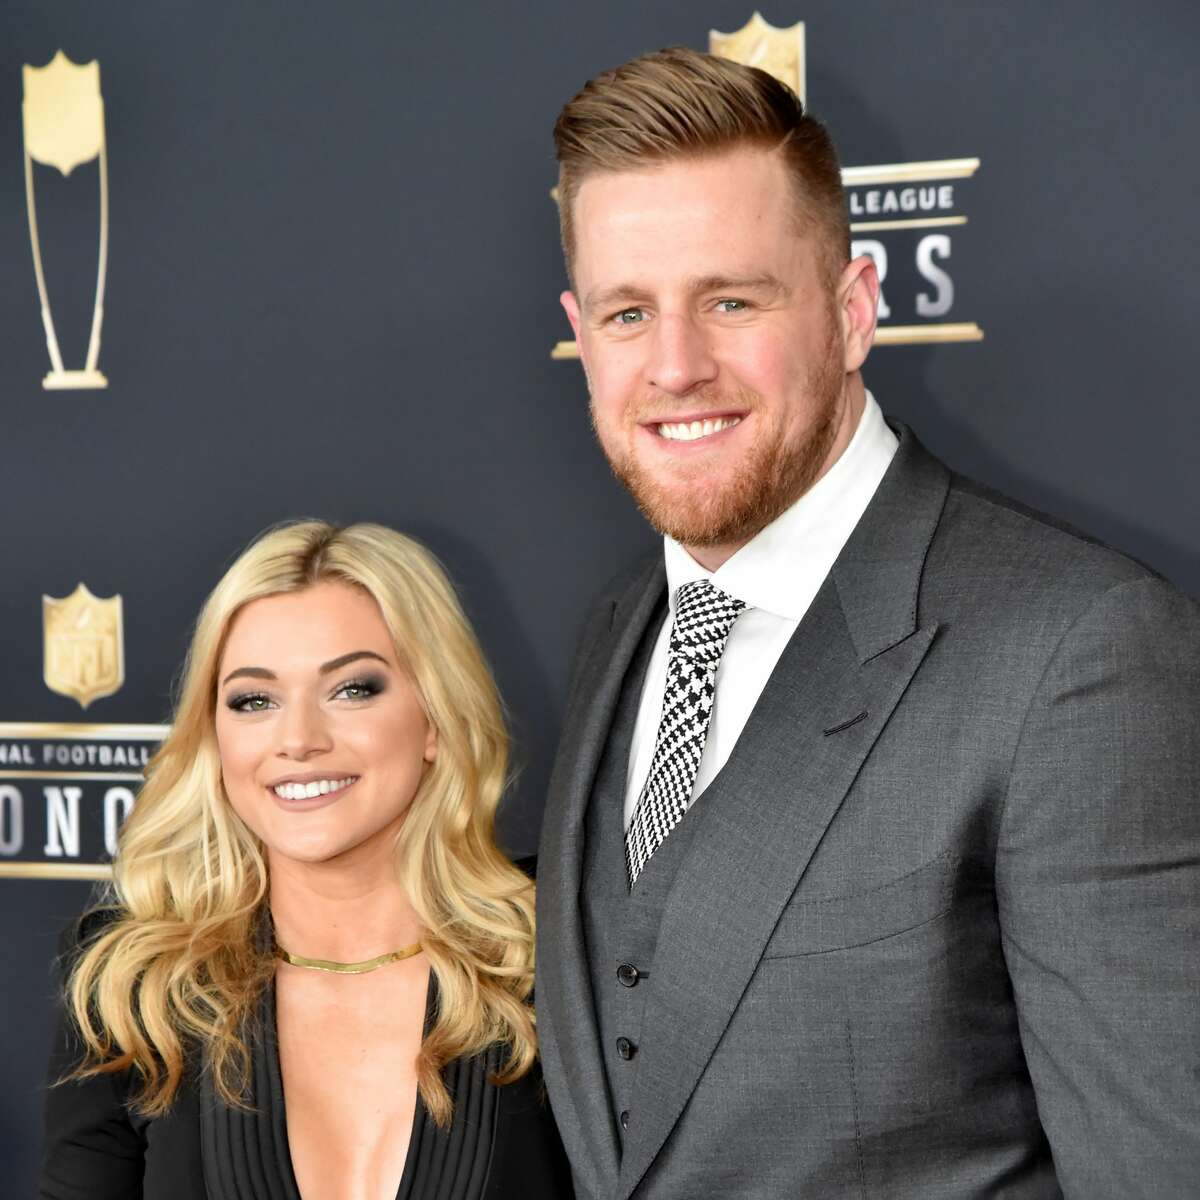 Kealia Ohai Expect to see professional soccer player Kealia Ohai, who is engaged to Texans linebacker J.J. Watt, in the stands at NRG Stadium.